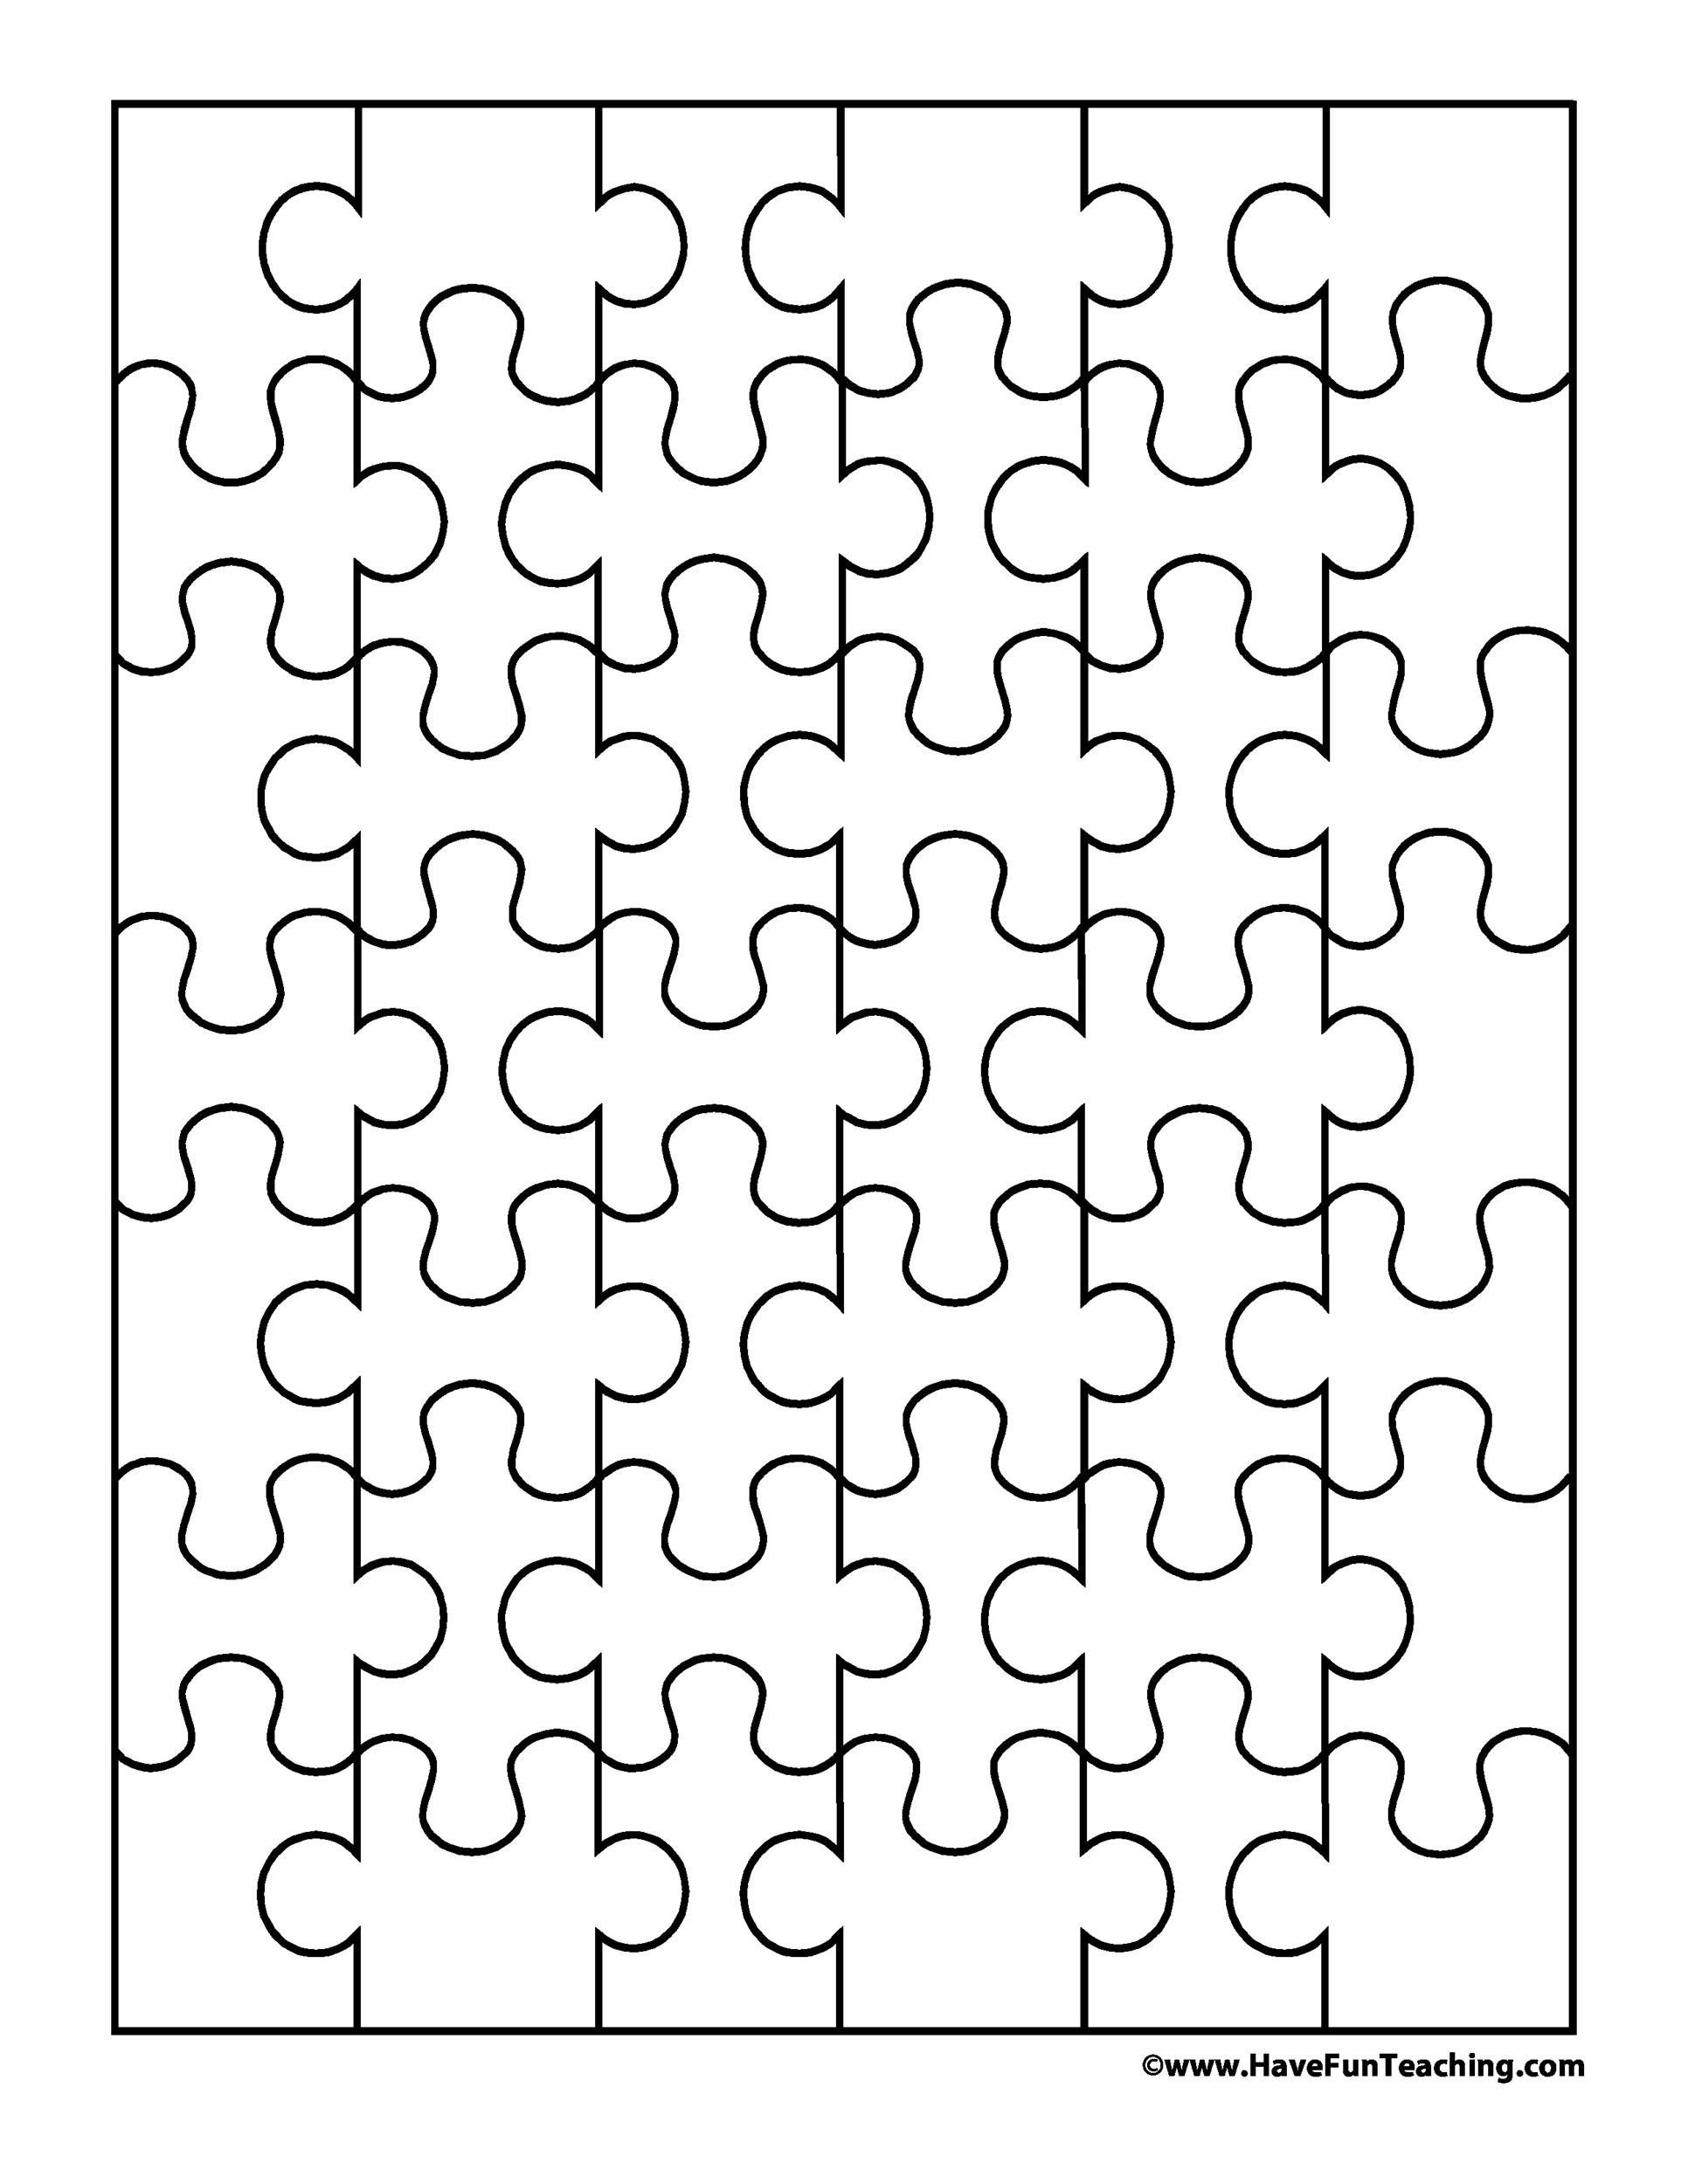 Free Puzzle Piece Template 02 Printable